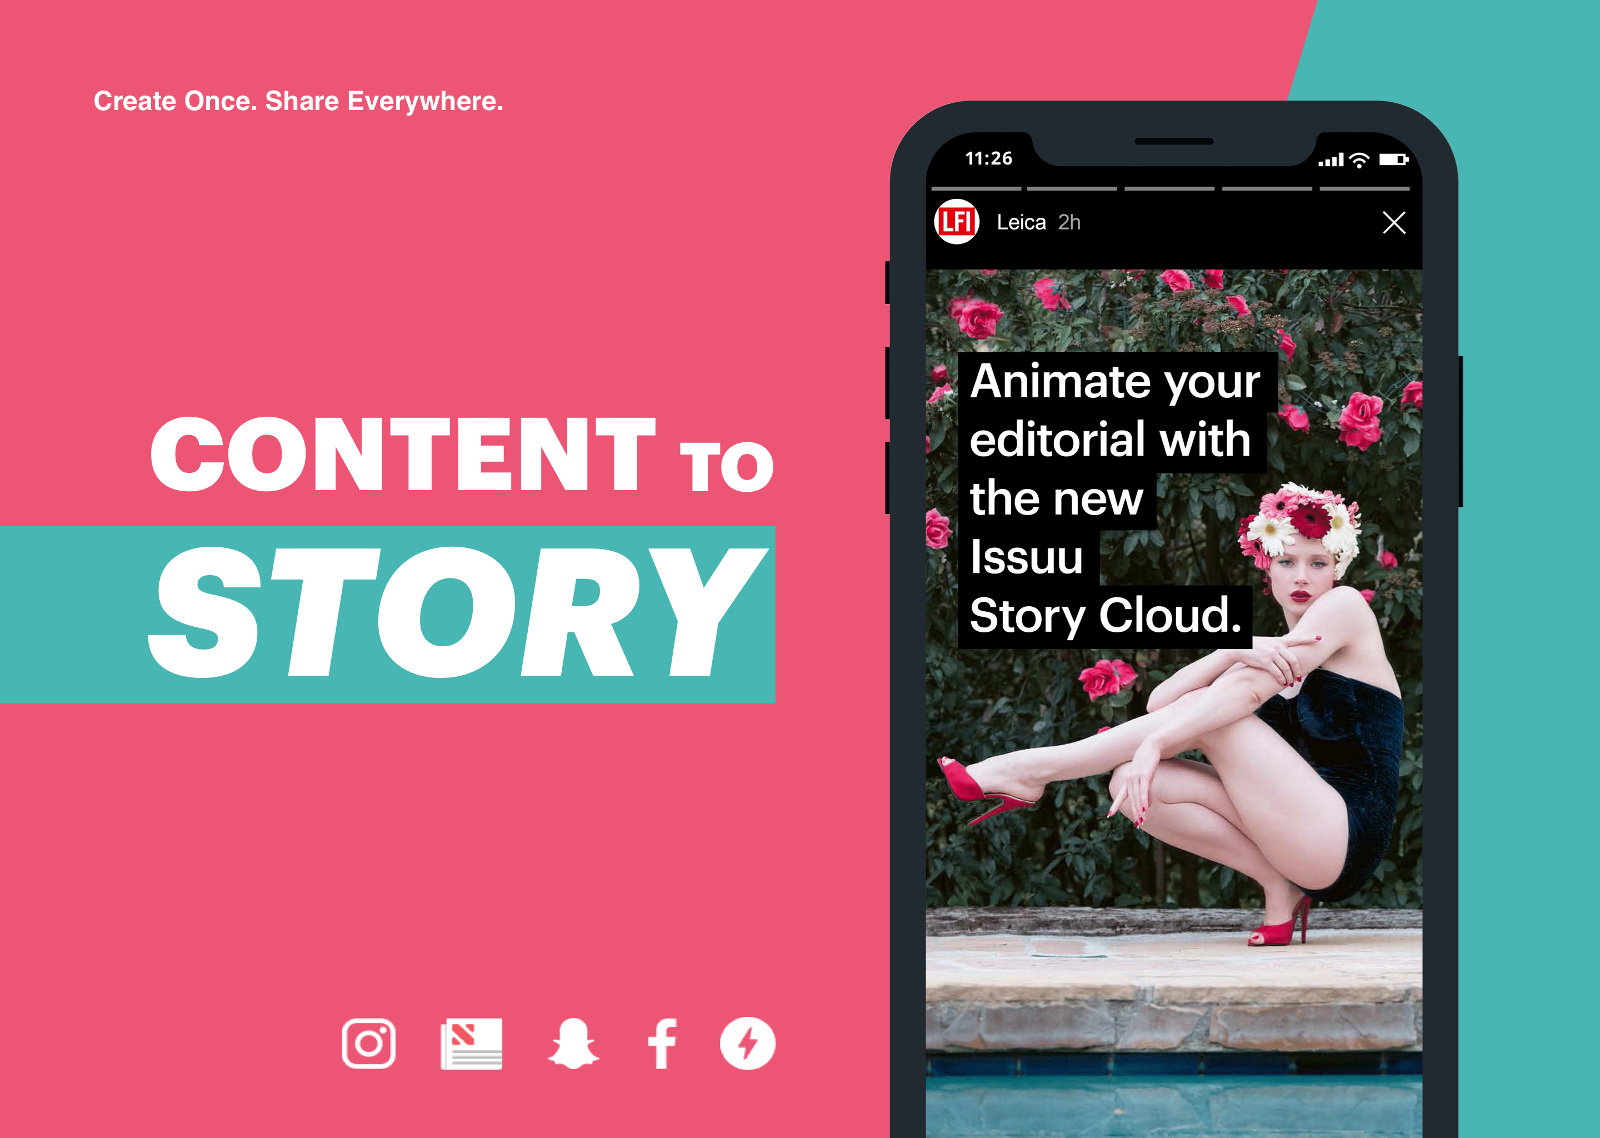 Content to Story